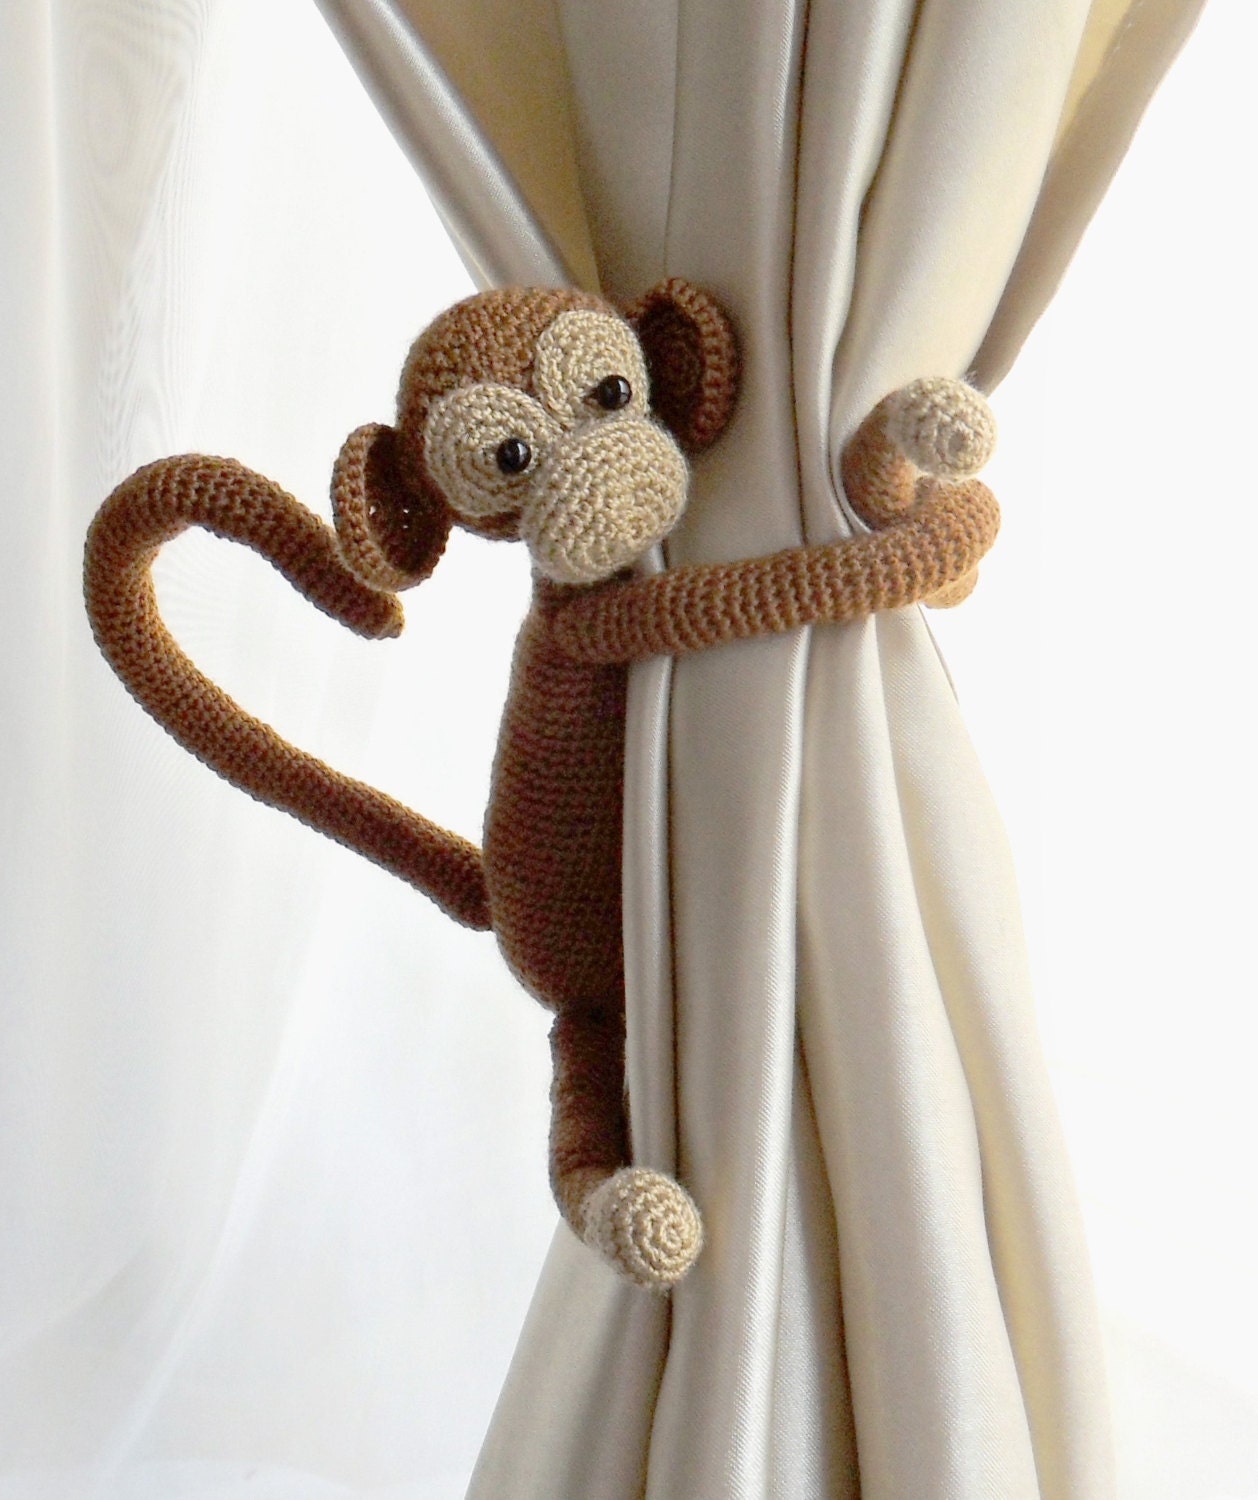 Drape Ties: Curtain Tie BackMonkey Curtain Tie Back1 PcsNursery